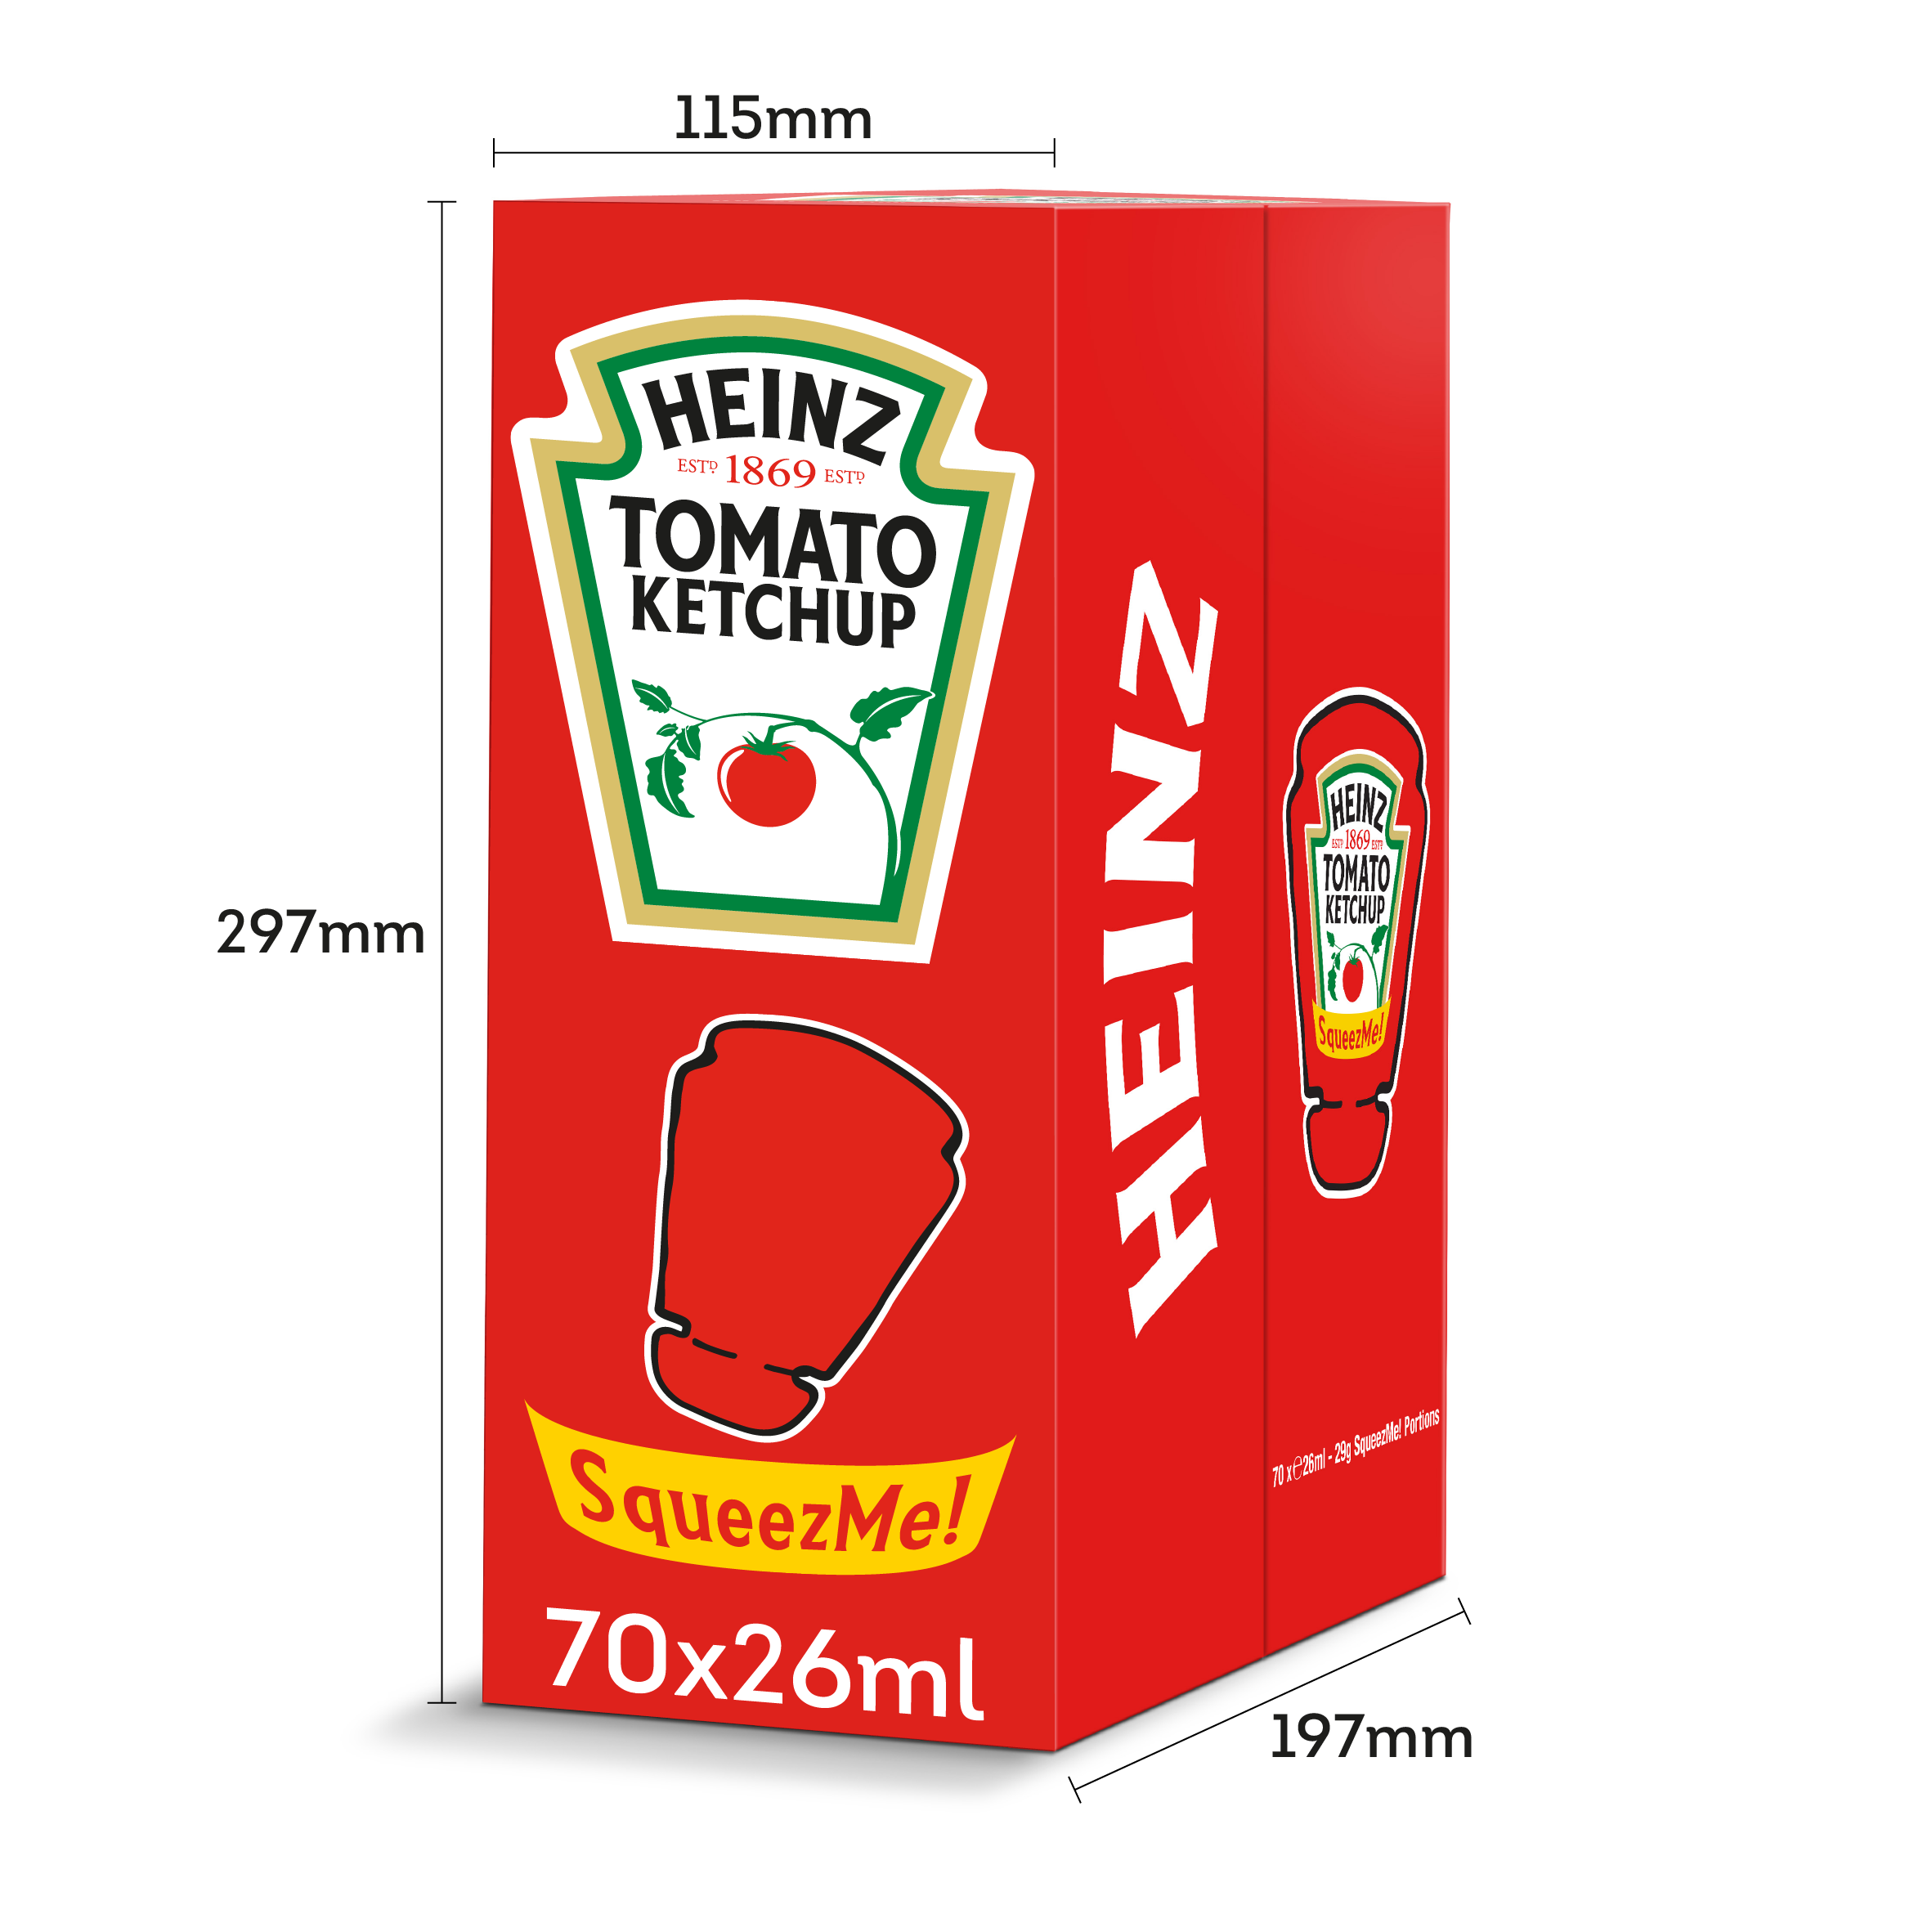 Heinz Tomato Ketchup Squeeze-Me 26ml